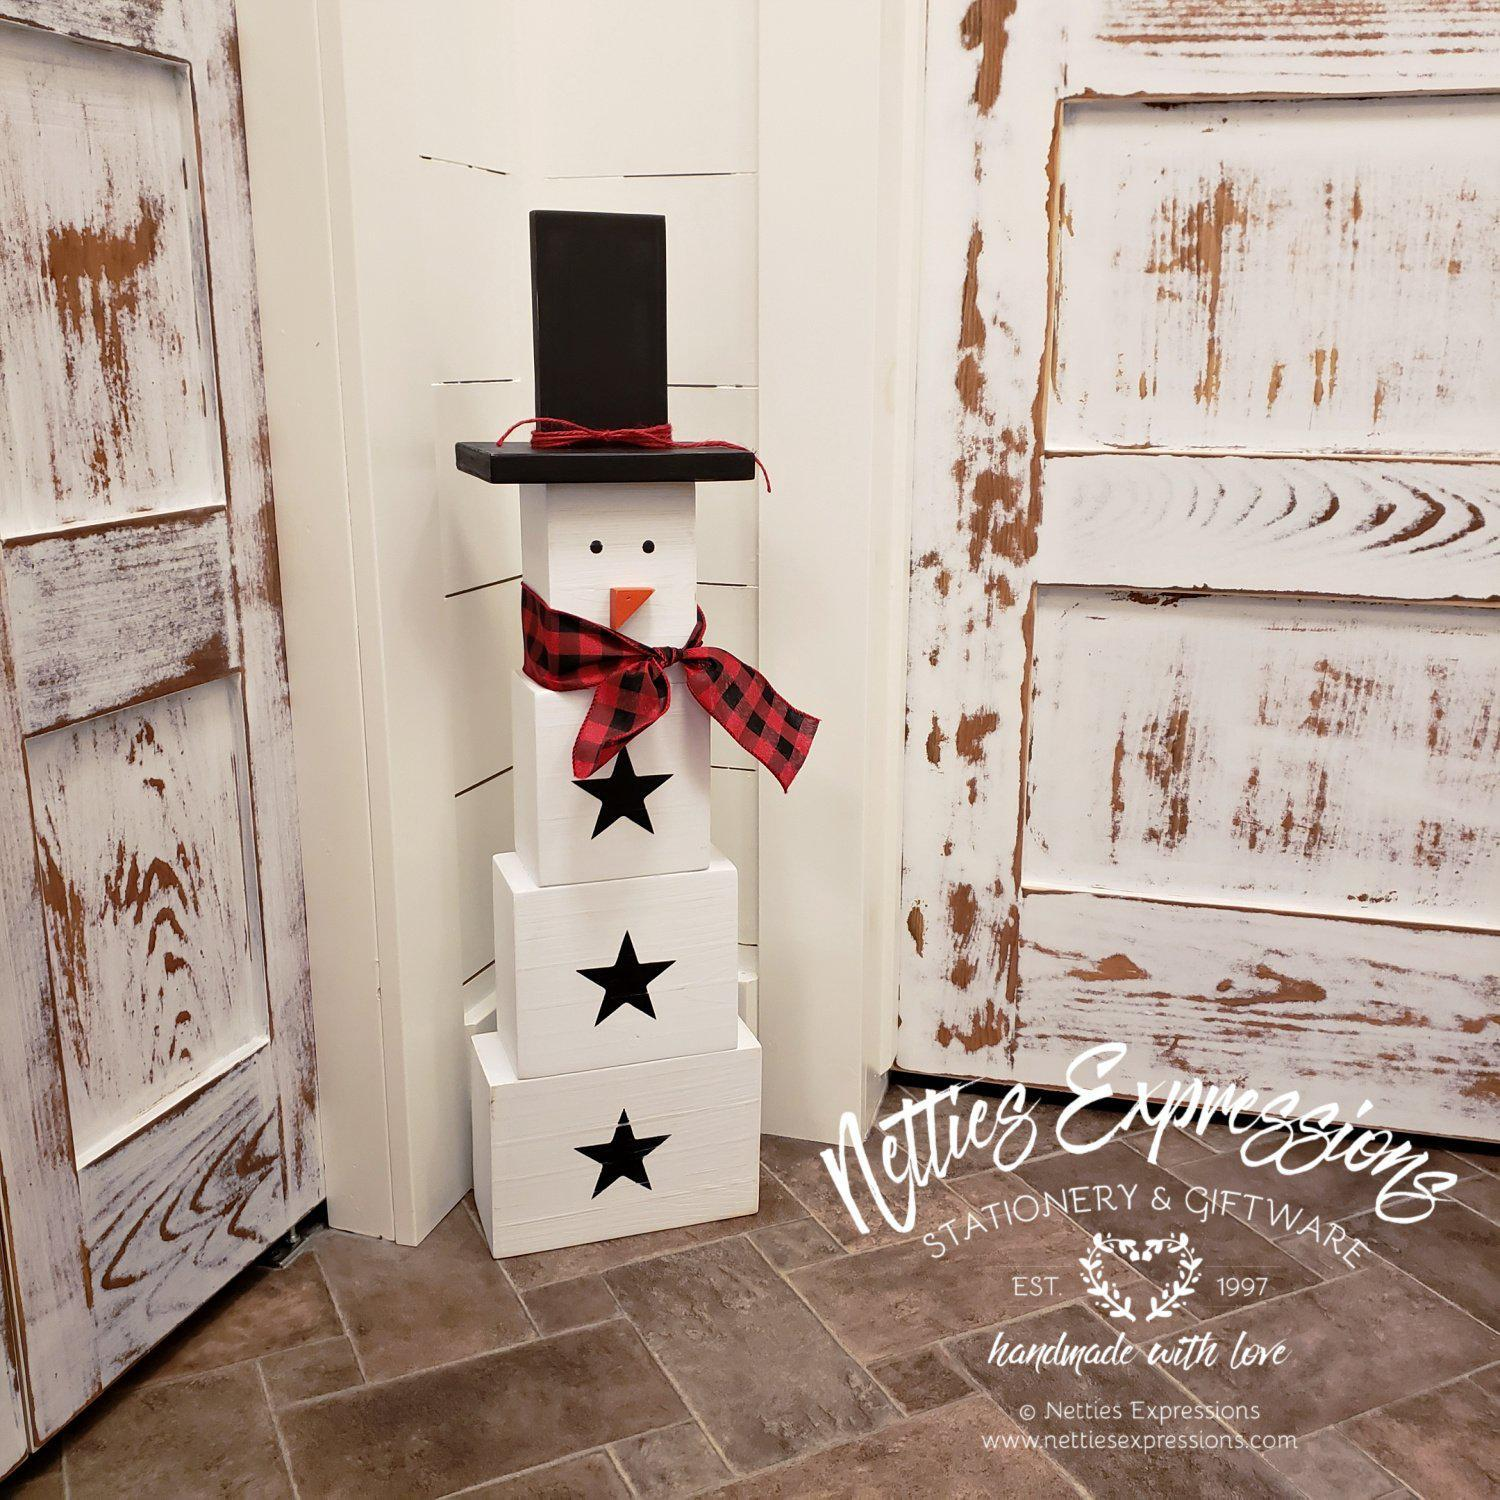 Extra-Large Wooden Snowman - Netties Expressions